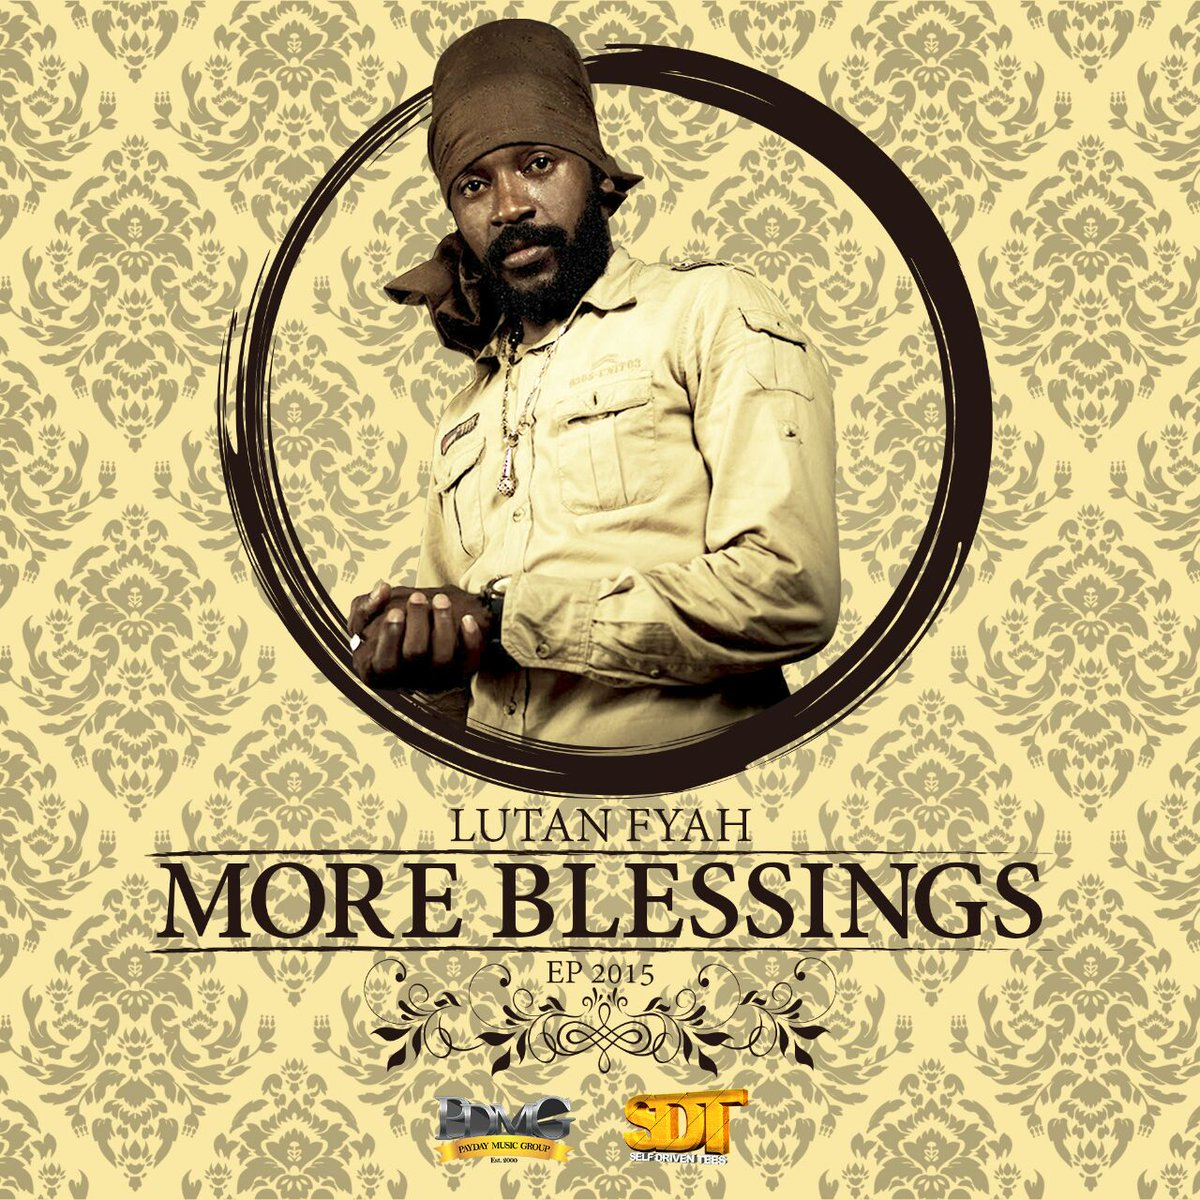 Get one of the biggest reggae Eps for 2015 on iTunes today today #MoreblessingsEp by @LutanFyah1 @EmmeieDonzilla https://t.co/BIK9vSfFQr